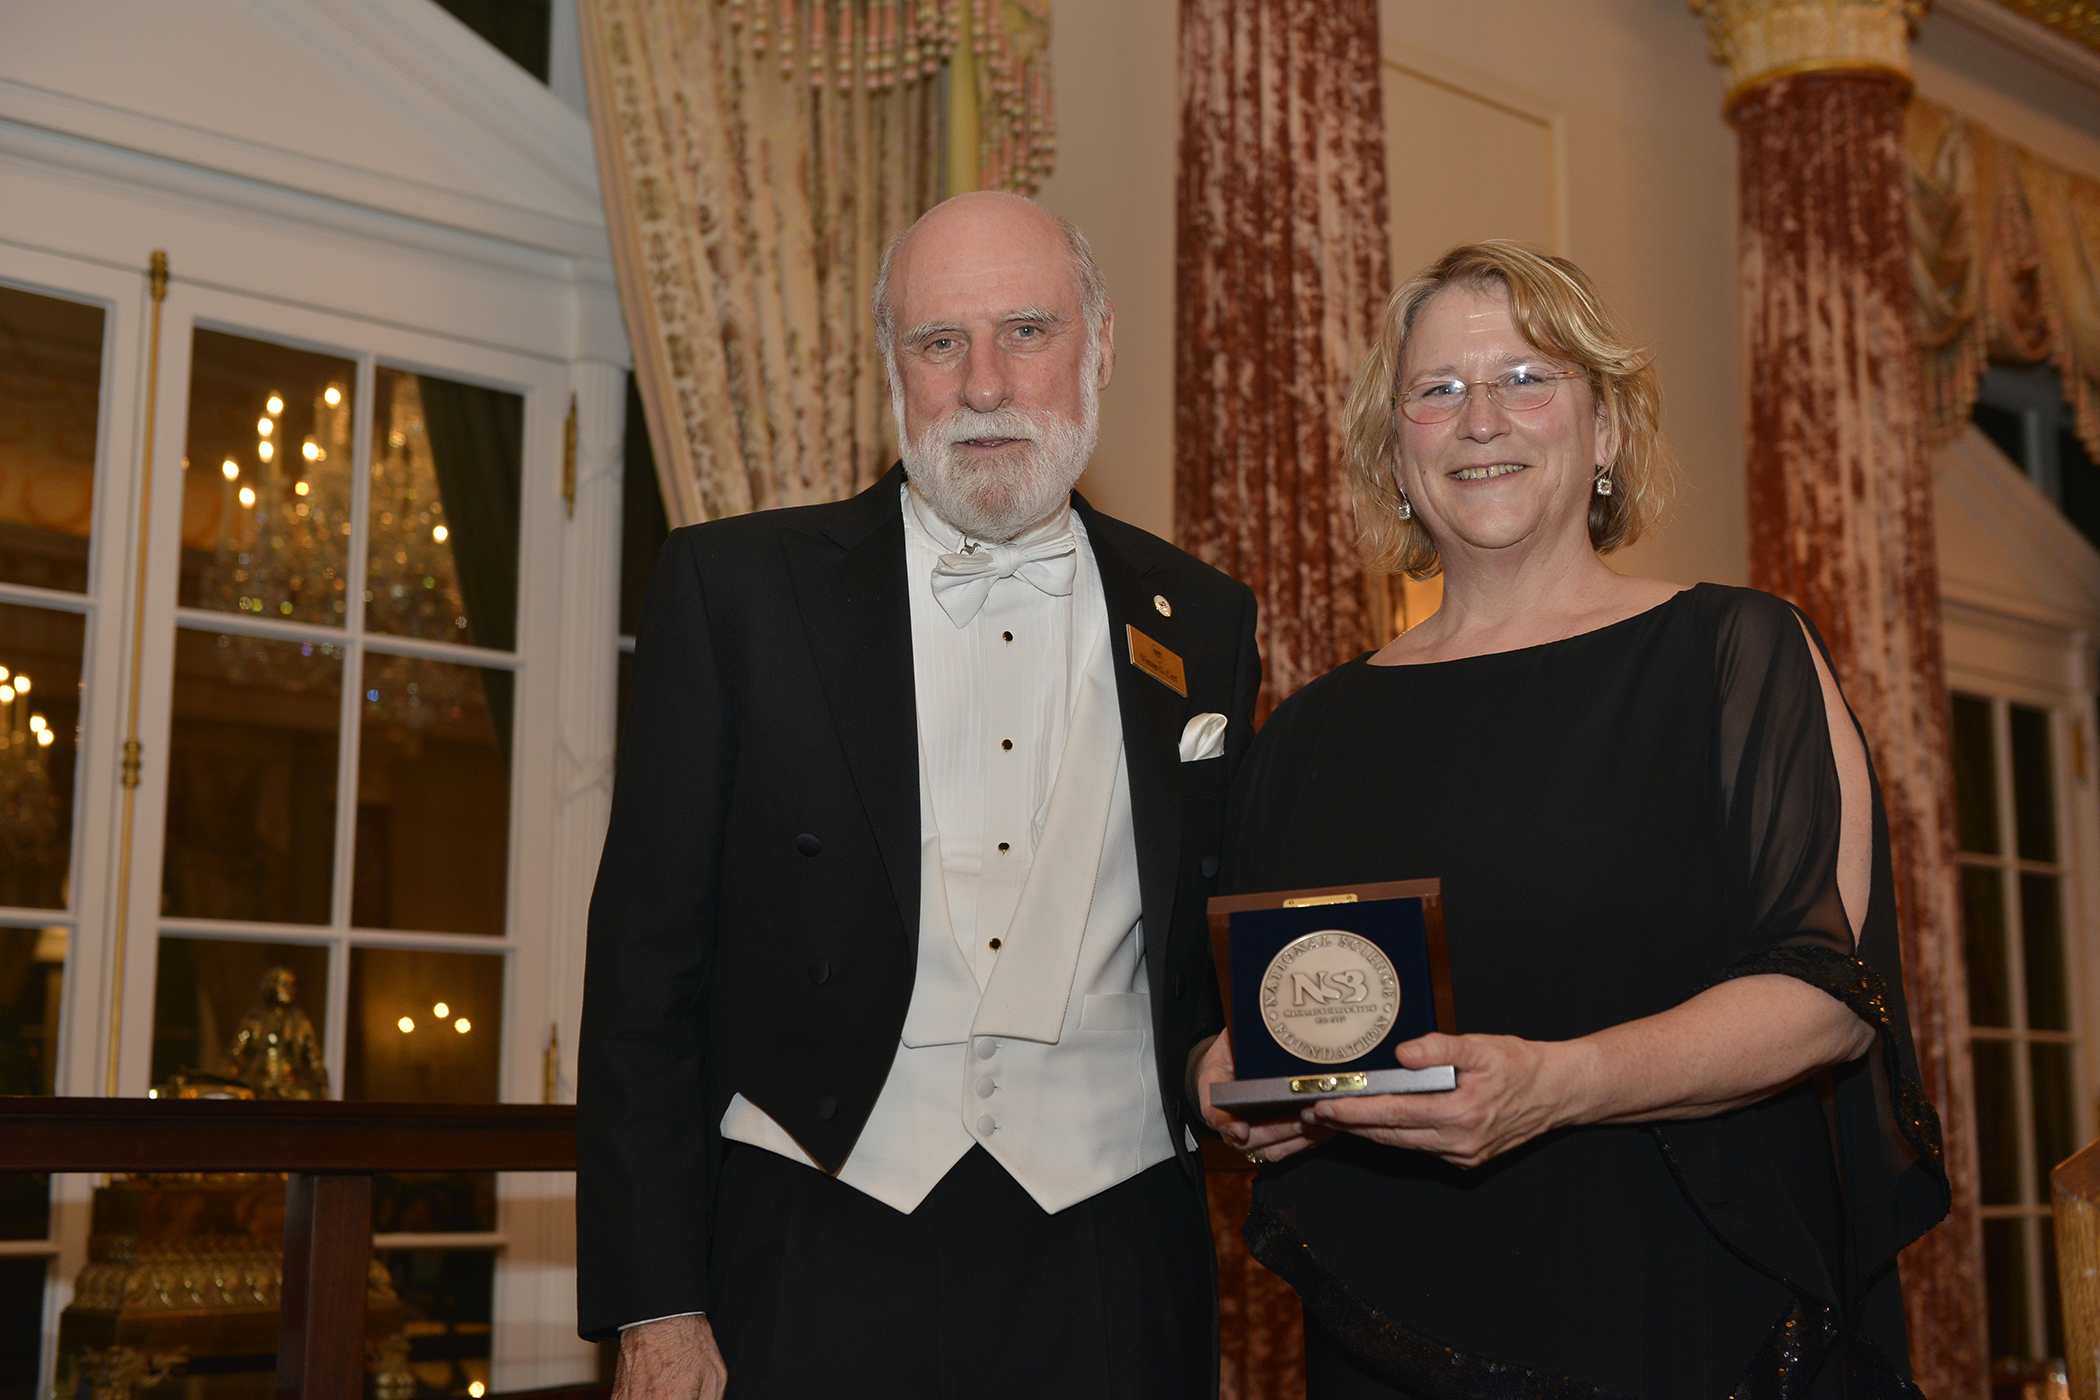 Image of Vinton Cerf and Peg Brandon